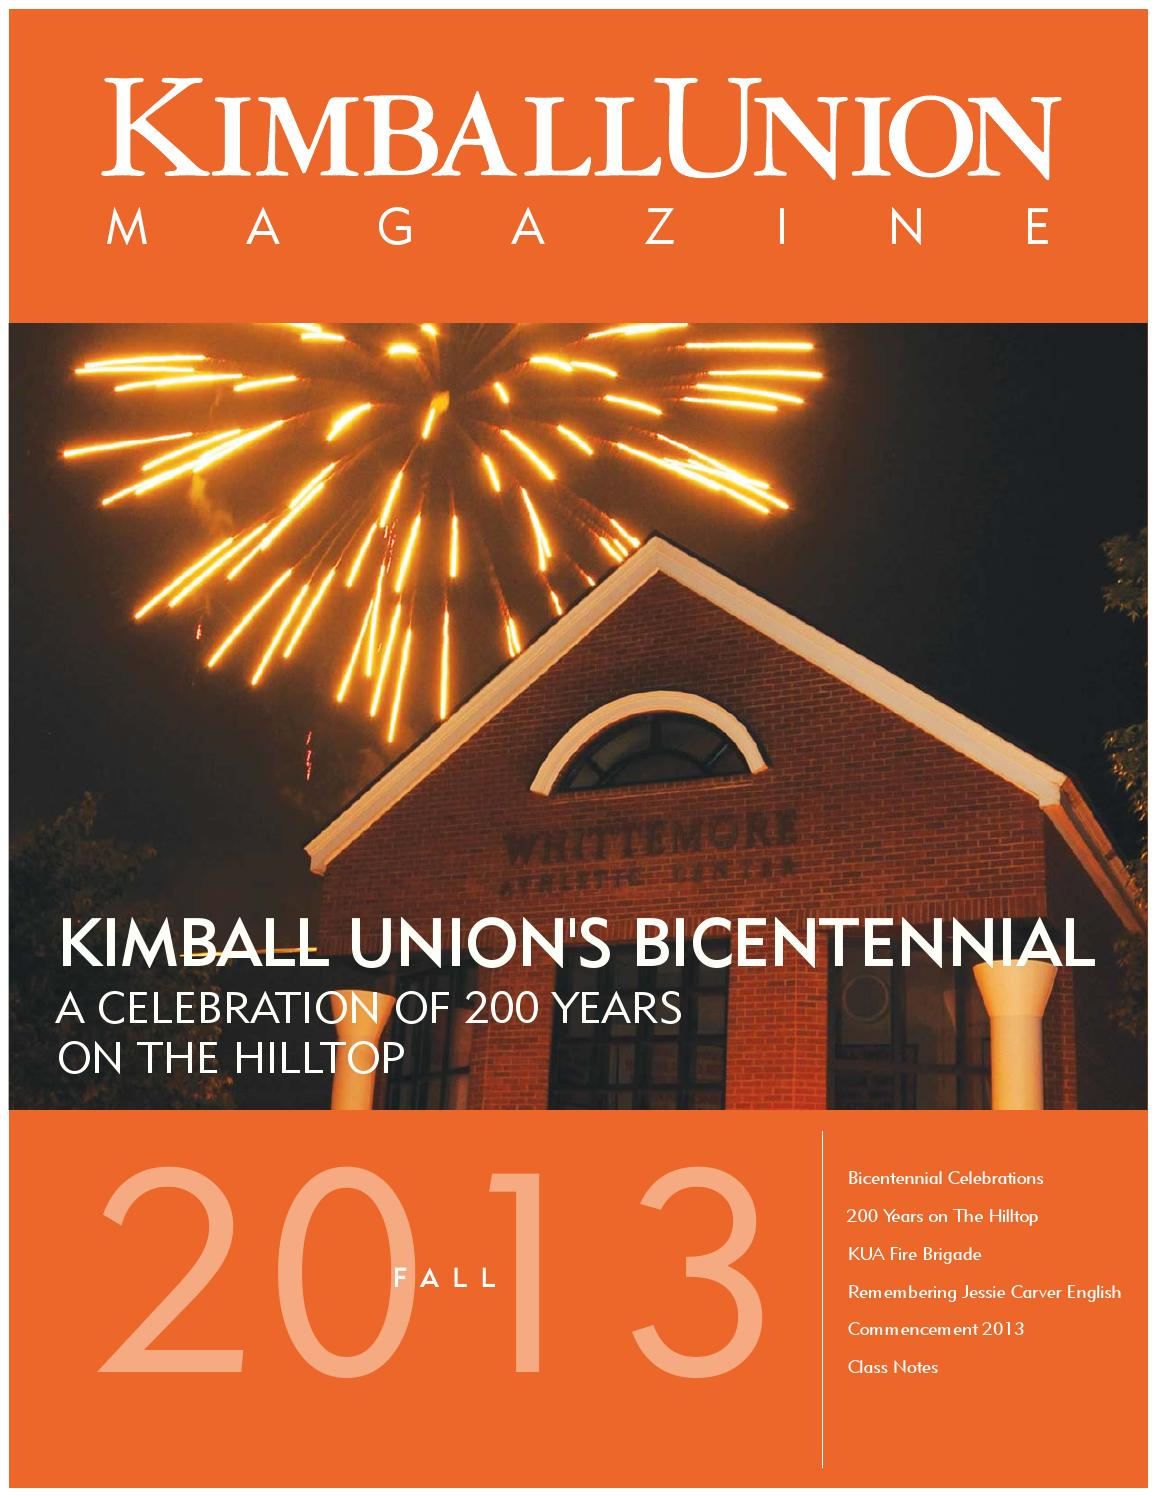 Kimball Union Magazine Fall 2013 By Christopher Creeger Issuu